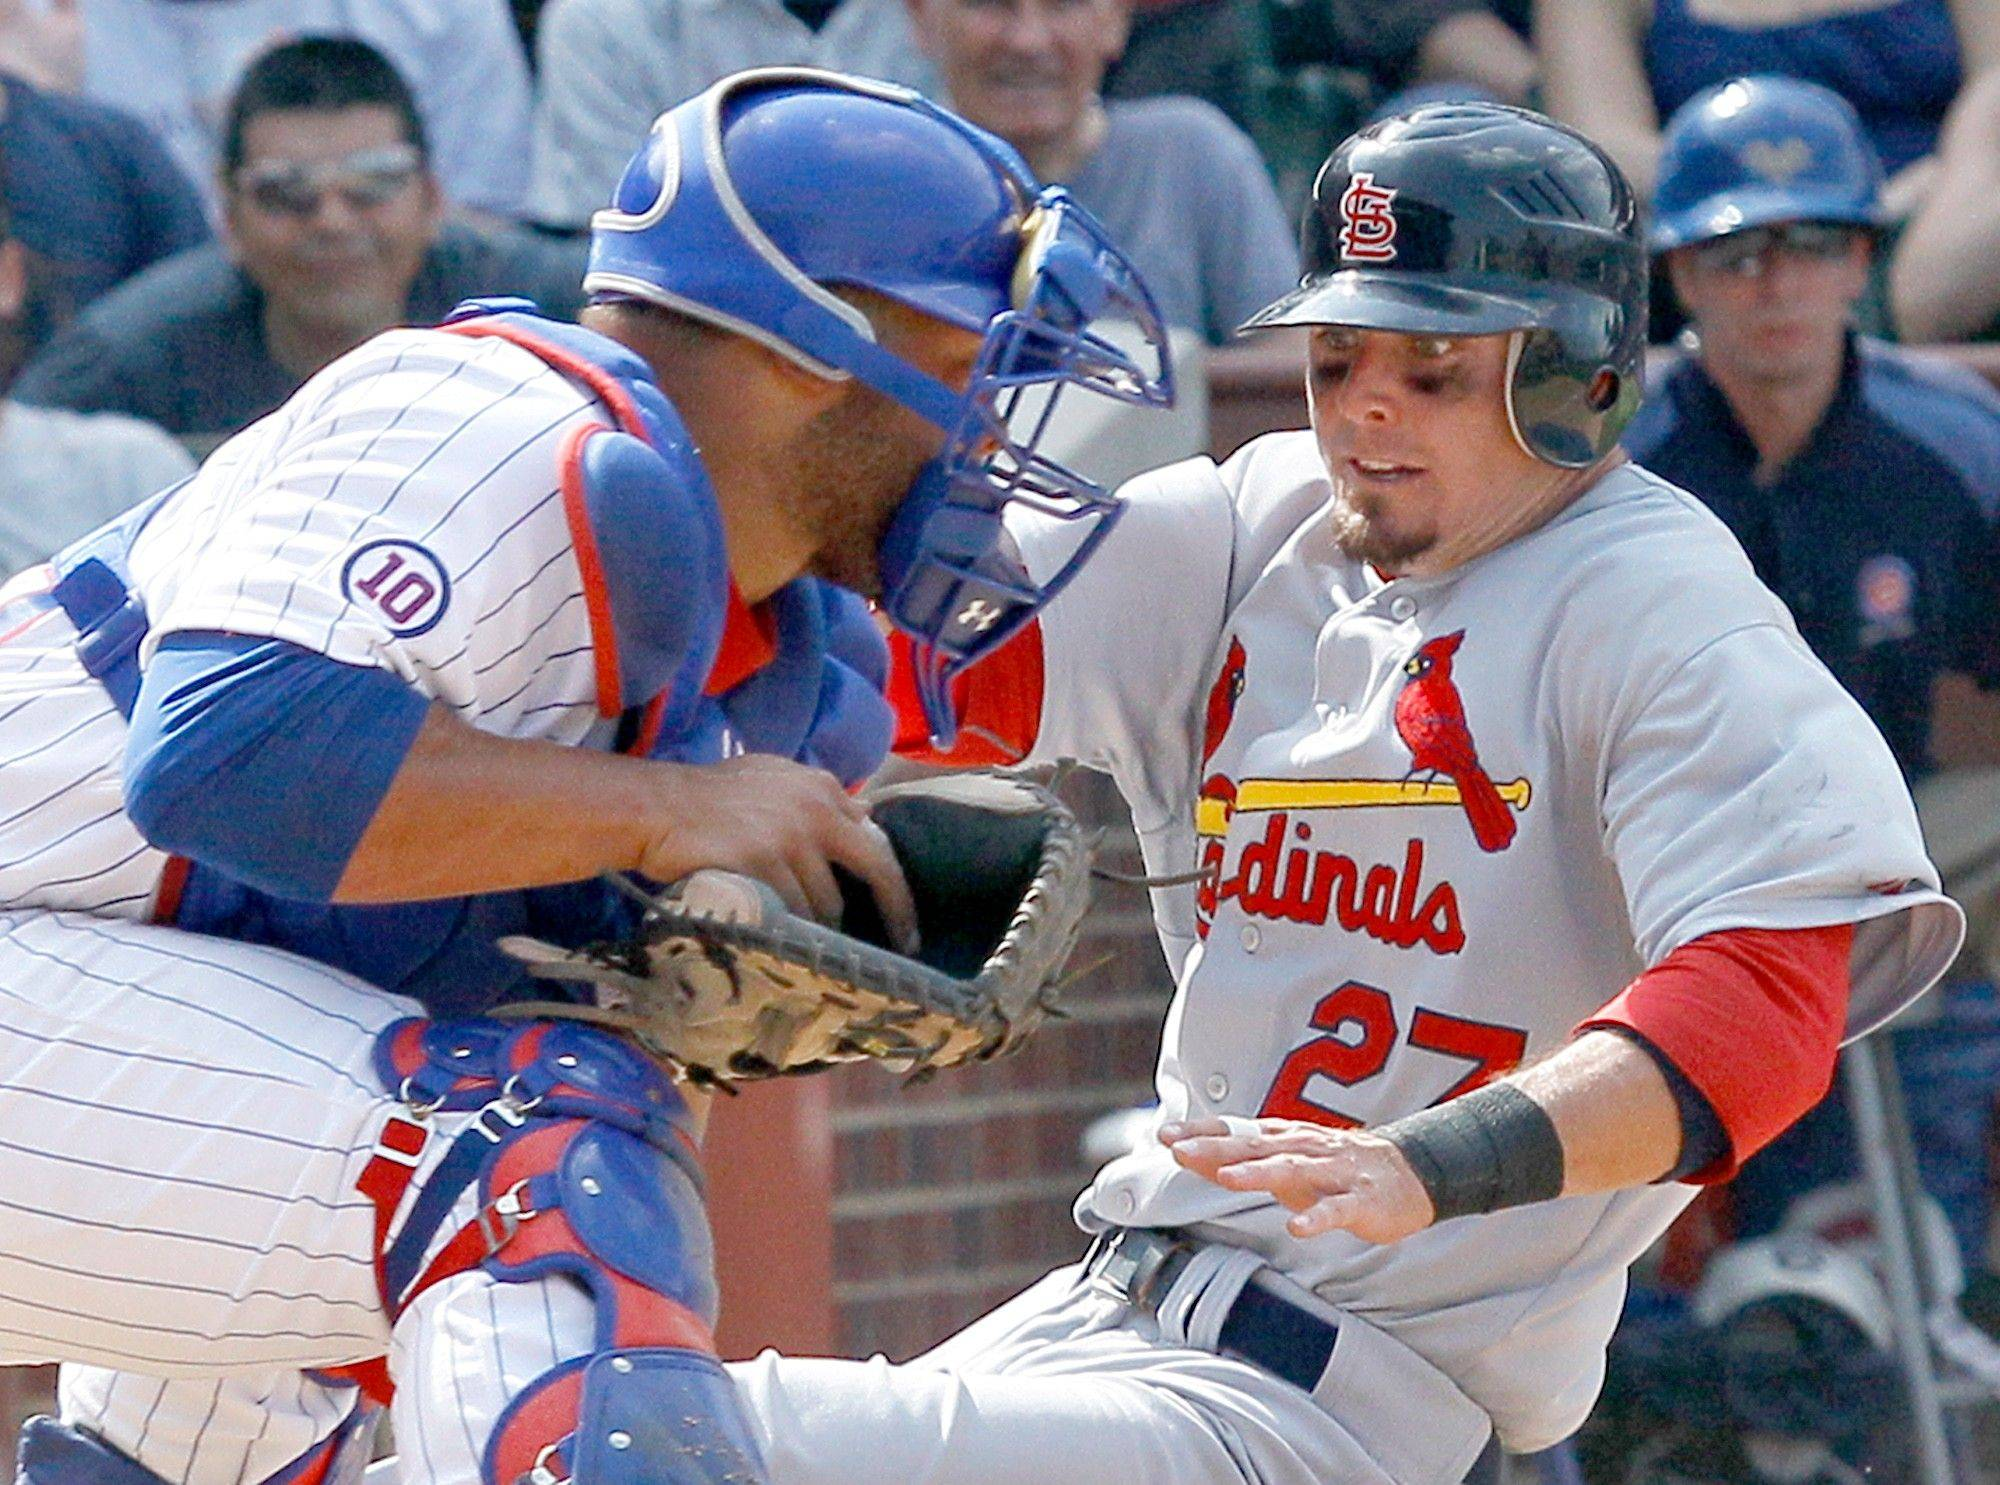 St. Louis Cardinals' Tyler Greene, right, slides safely behind Chicago Cubs catcher Welington Castillo off an RBI single by St. Louis Cardinals' Jon Jay and a throw from center fielder Marlon Byrd during the seventh inning of a baseball game Thursday, May 12, 2011 in Chicago.